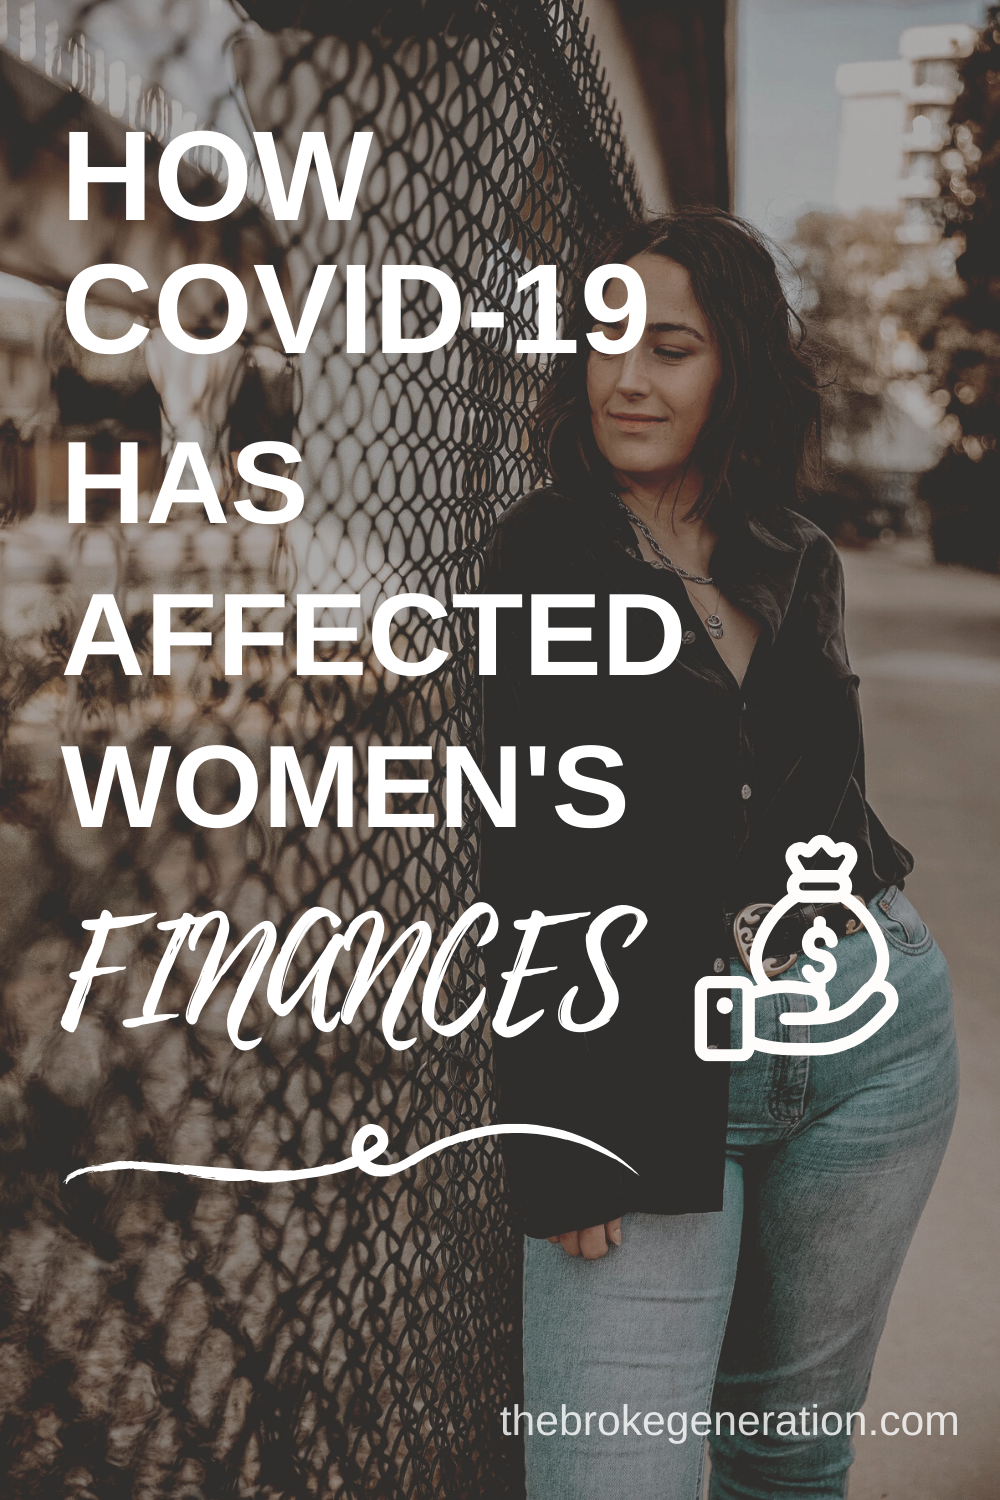 How COVID-19 has affected women's finances